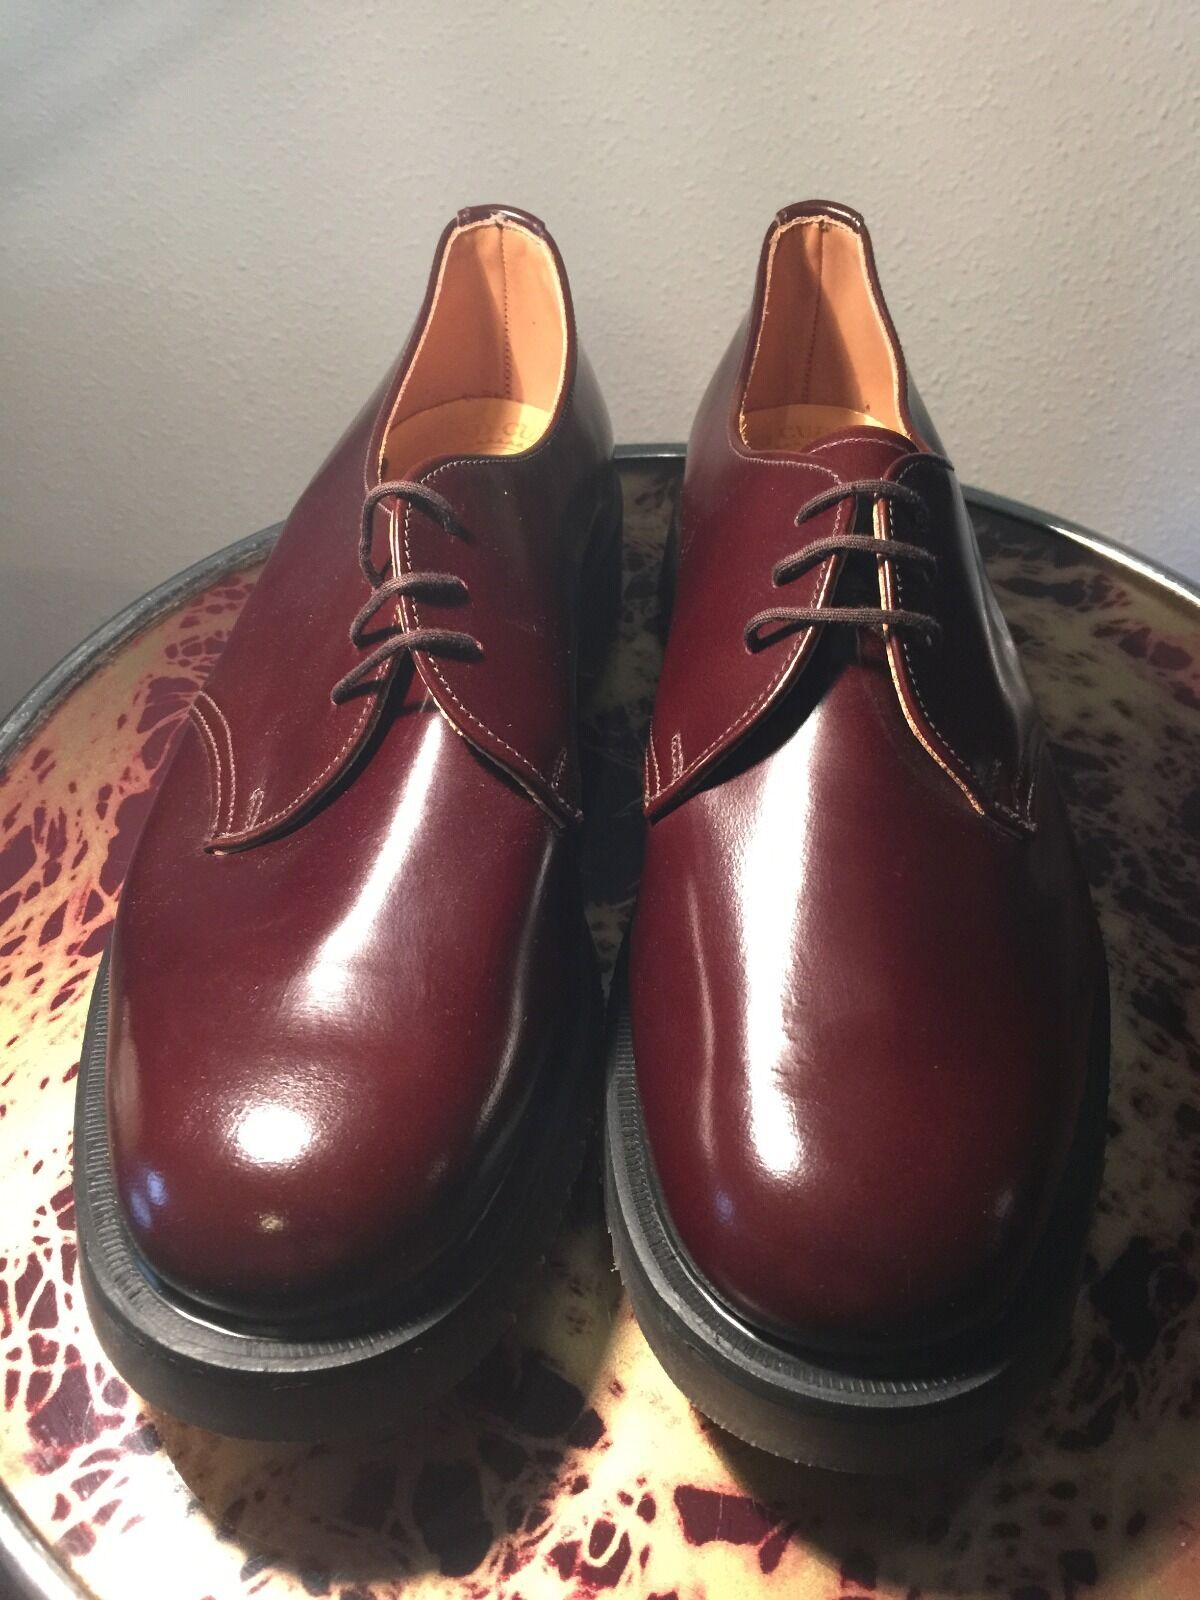 Classic English oxblood gobson all leather upper air cushion sole sz 7 NOS